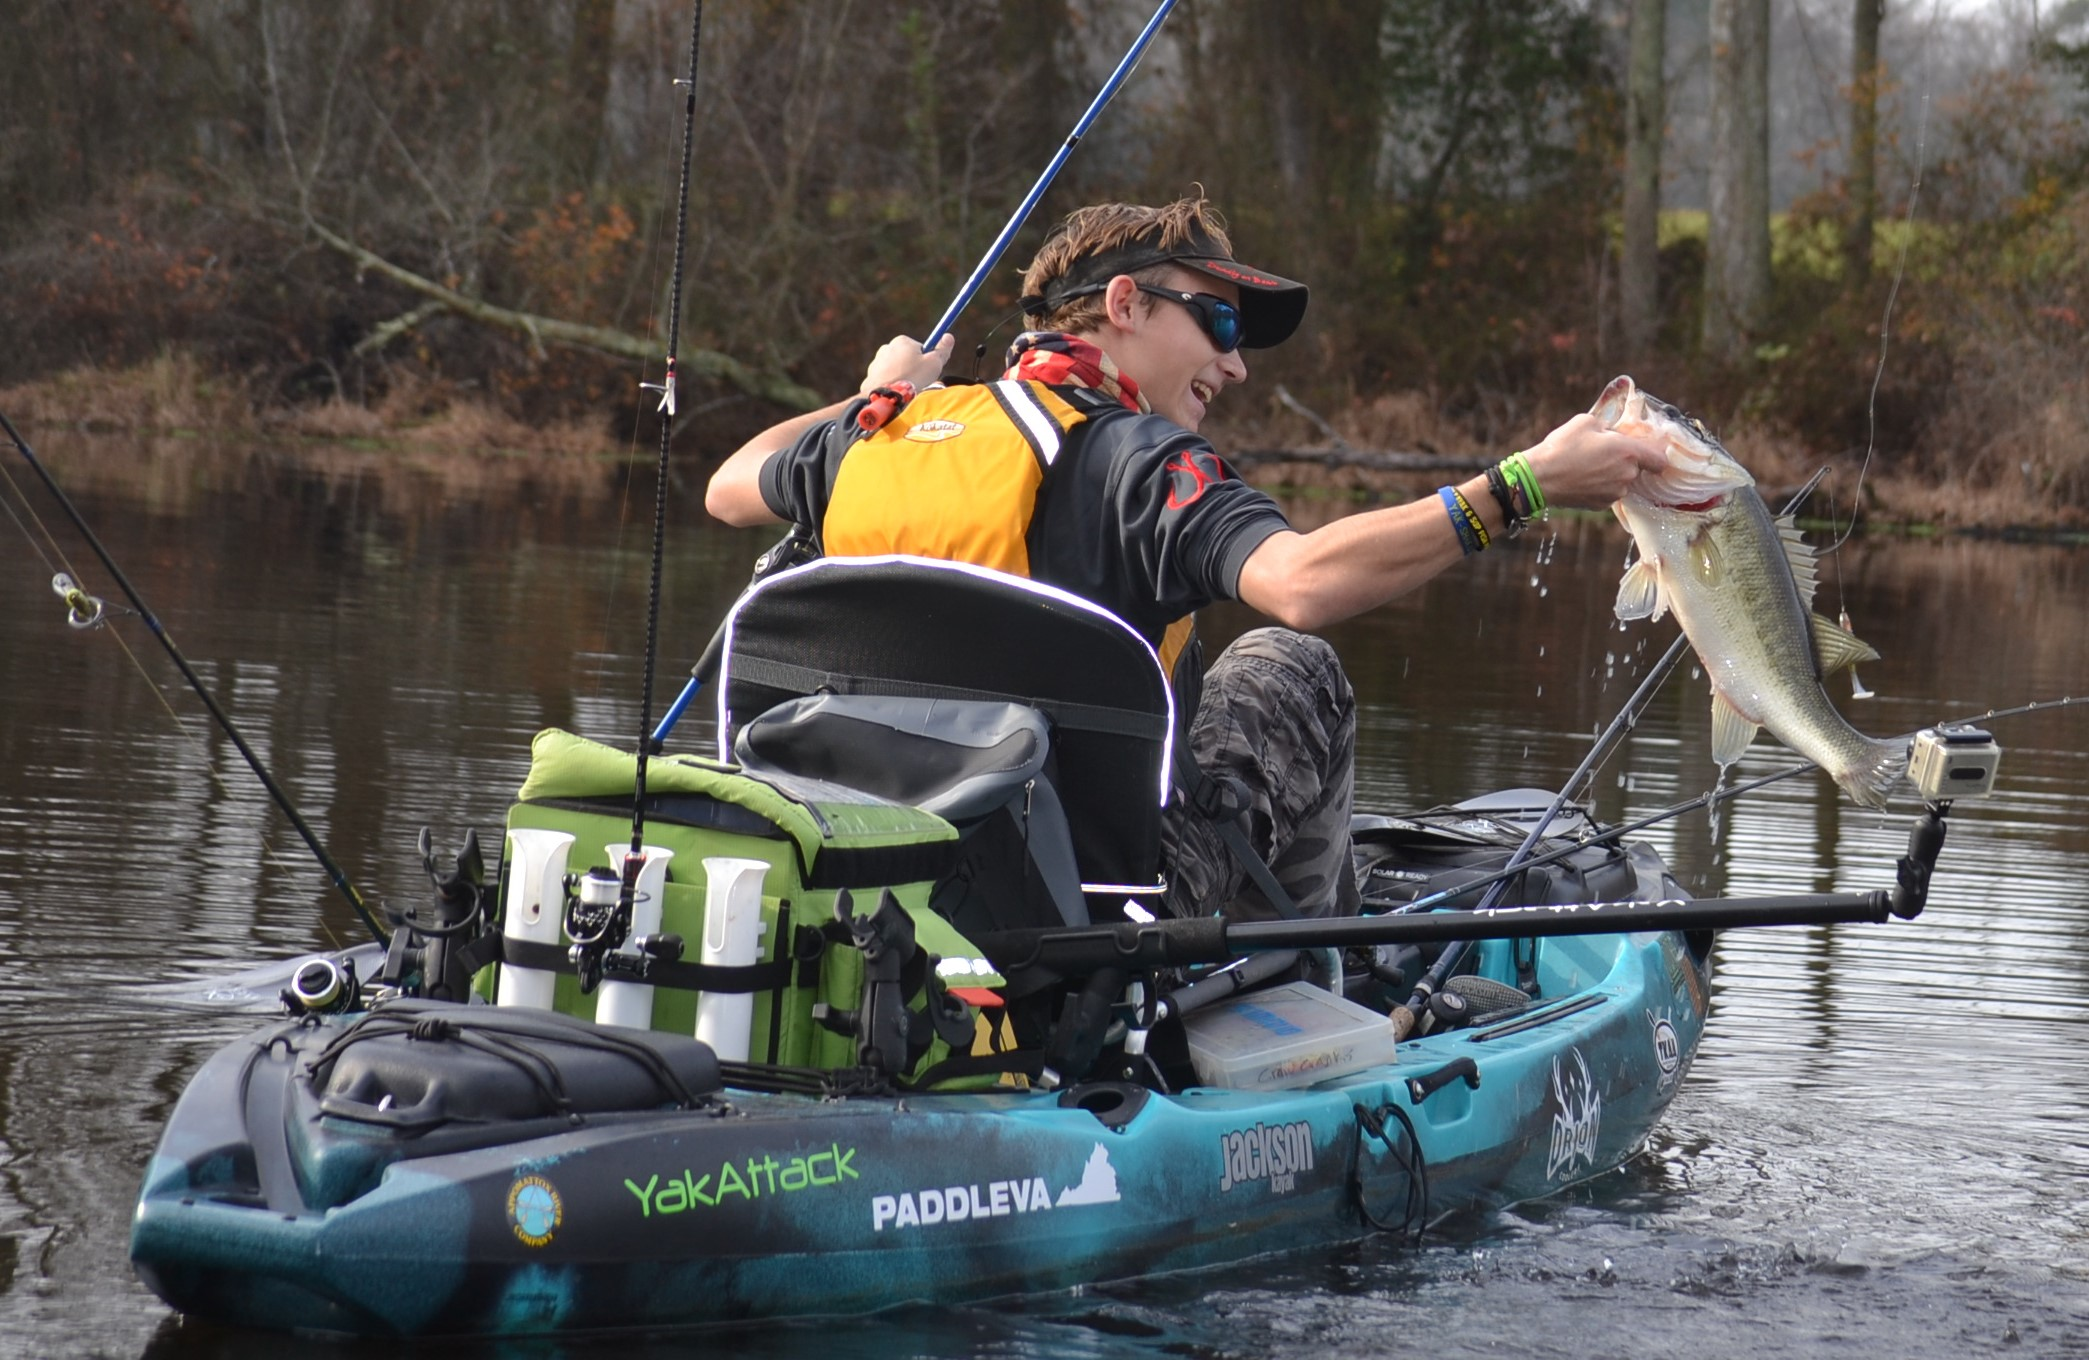 2015 achieving a new goal for Fishing jackson kayak